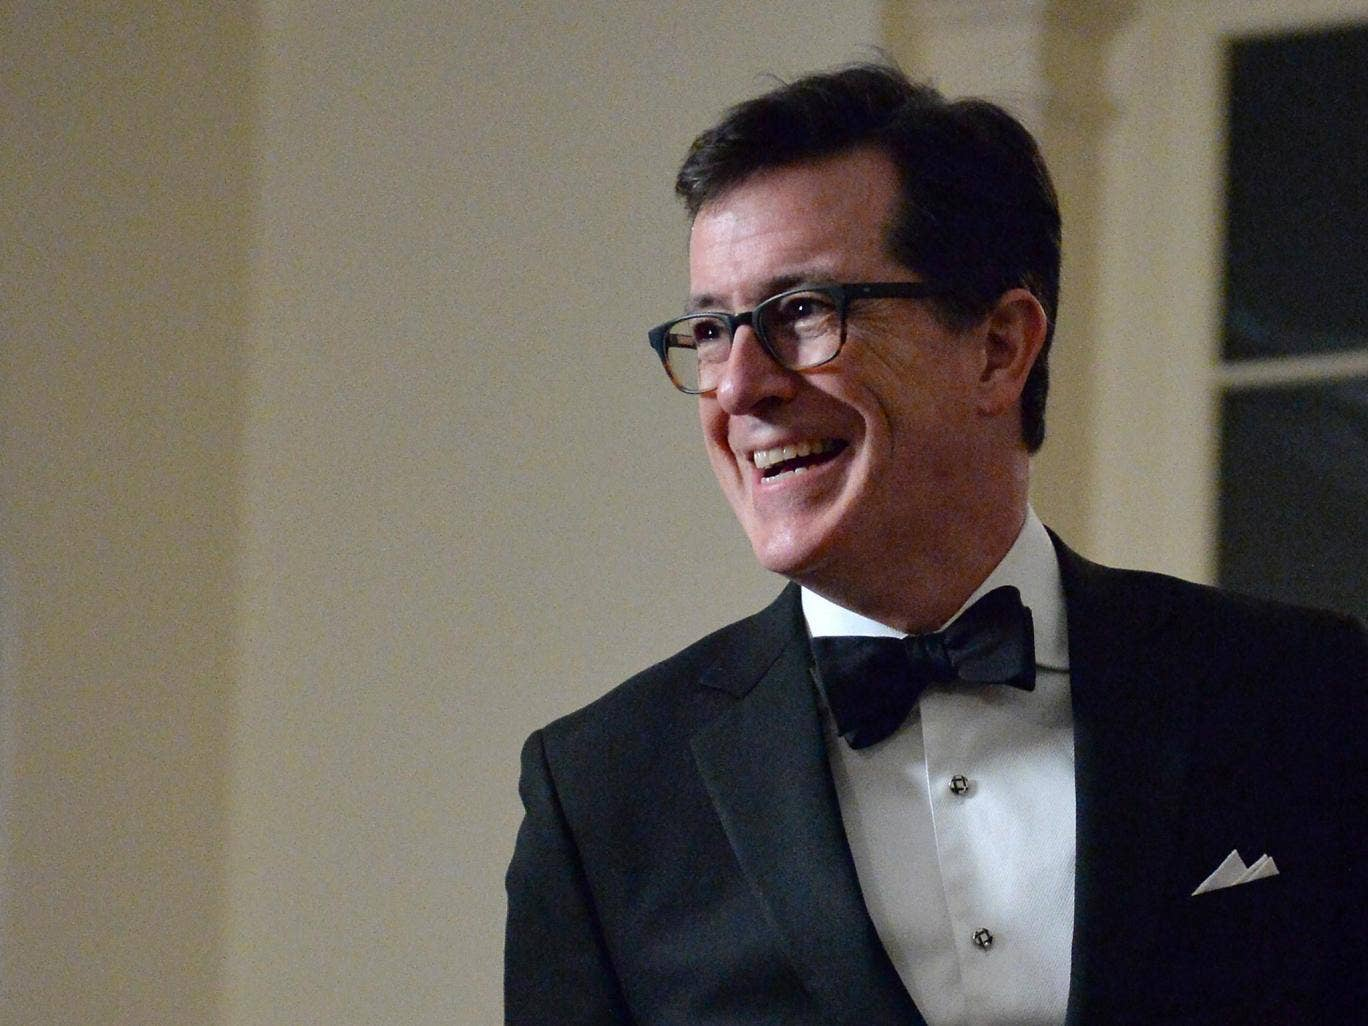 Political comedian Stephen Colbert, who will be replacing David Letterman on 'The Late Show'